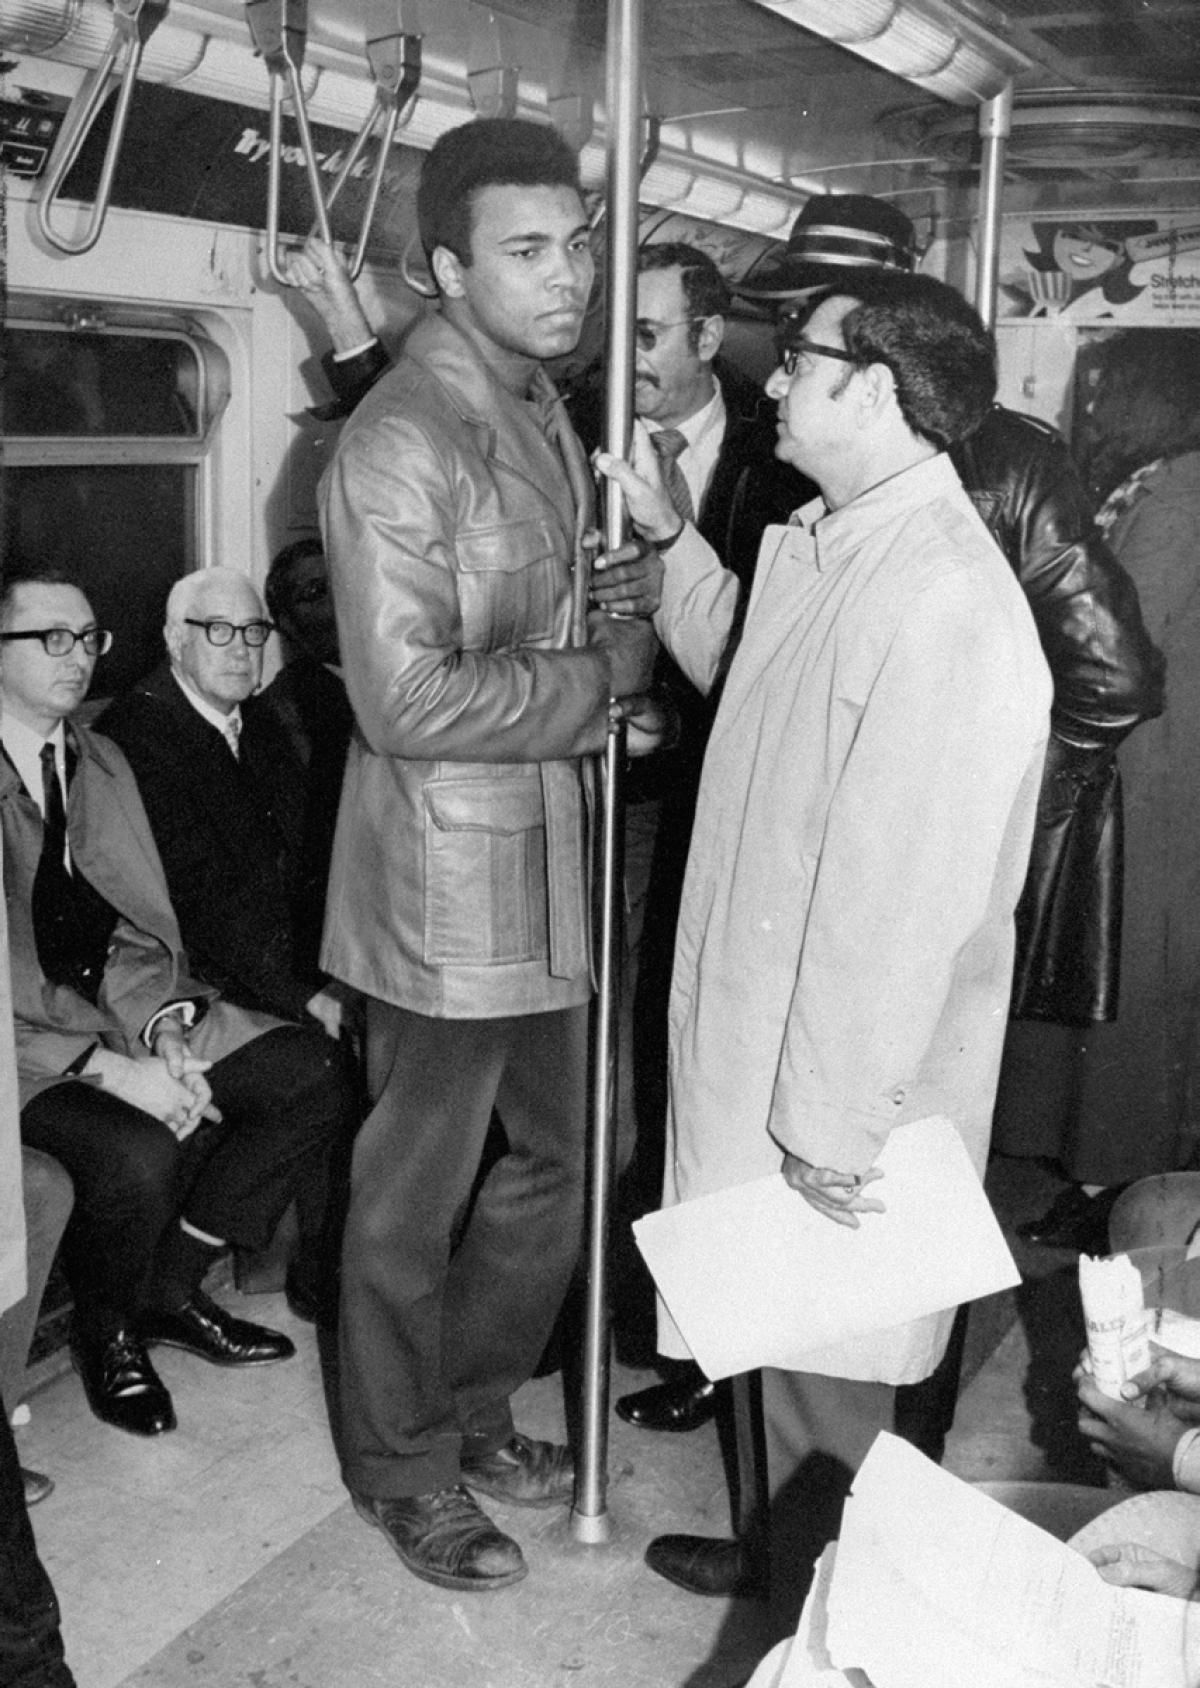 Muhammad Ali Cassius Clay Stands In Subway Car With